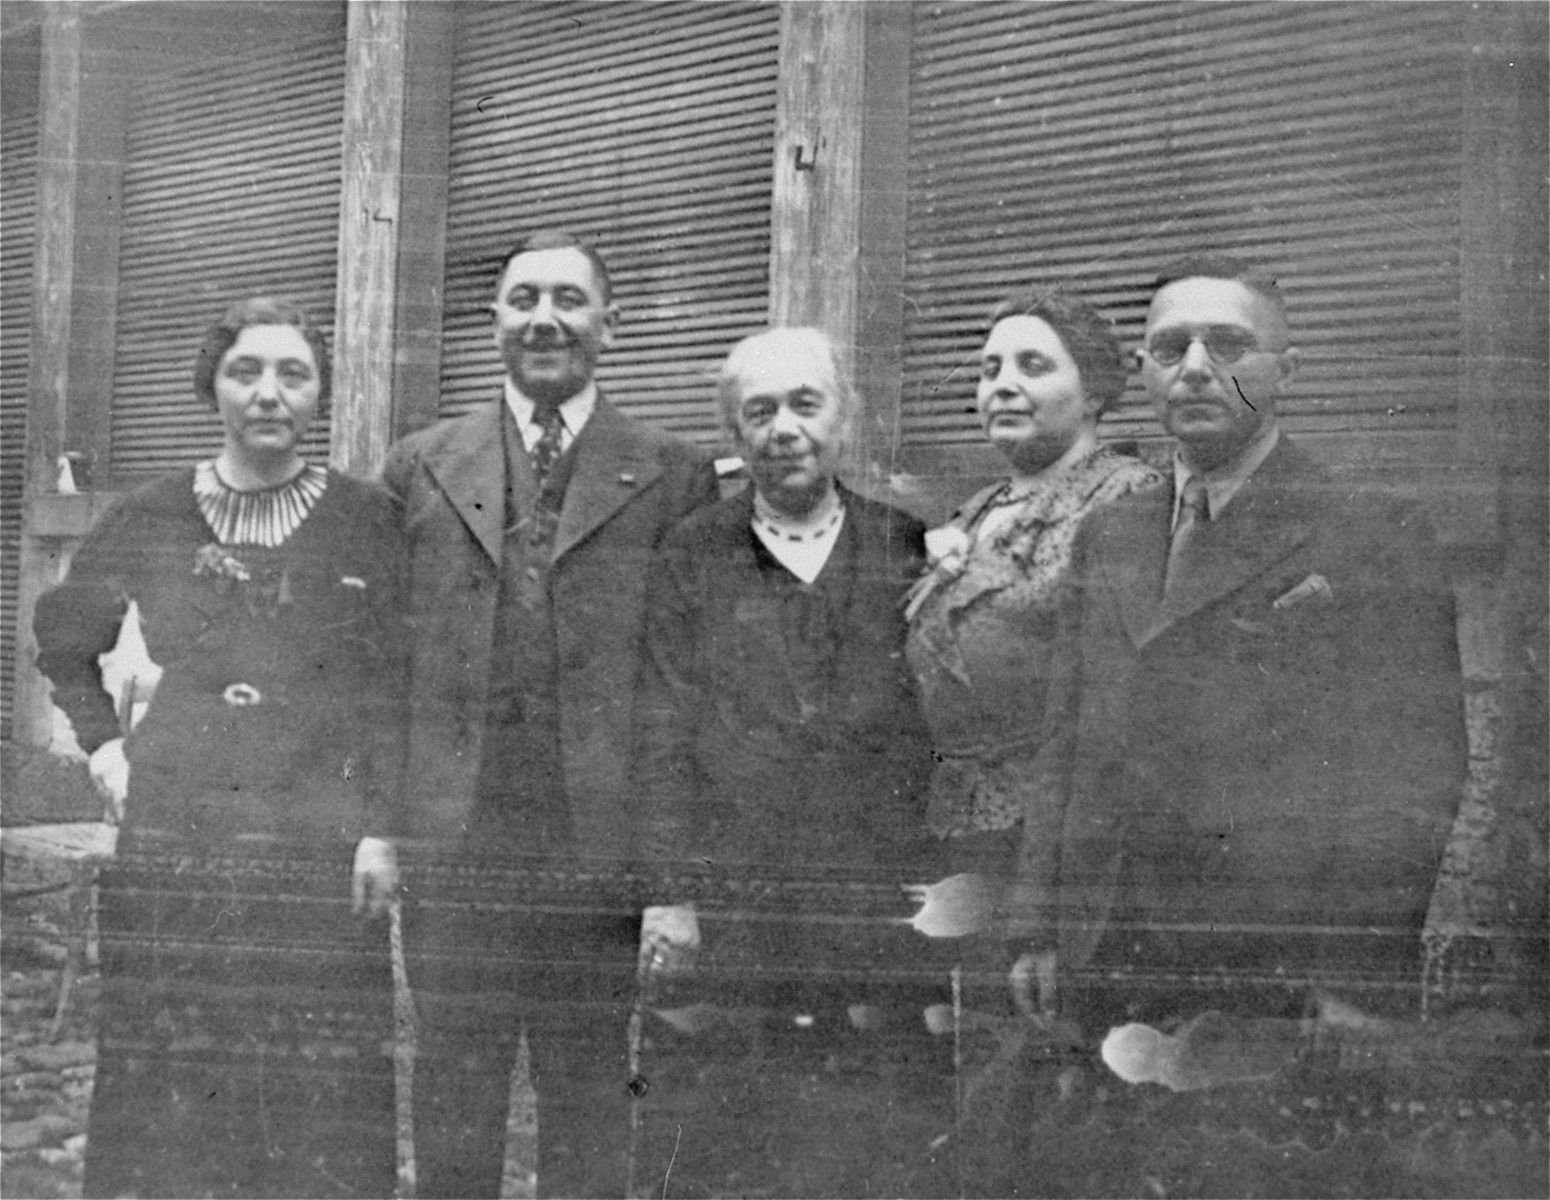 Members of the Wachenheimer family pose in front of their dry goods store.    Pictured from left to right are: Sophie Wachenheimer Strauss, Oskar Wachenheimer, Lina Weissman Wachenheimer, Hilda Wachenheimer Weil and Hugo Wachenheimer.  The entire family was deported to the Gurs internment camp on October 22, 1940.